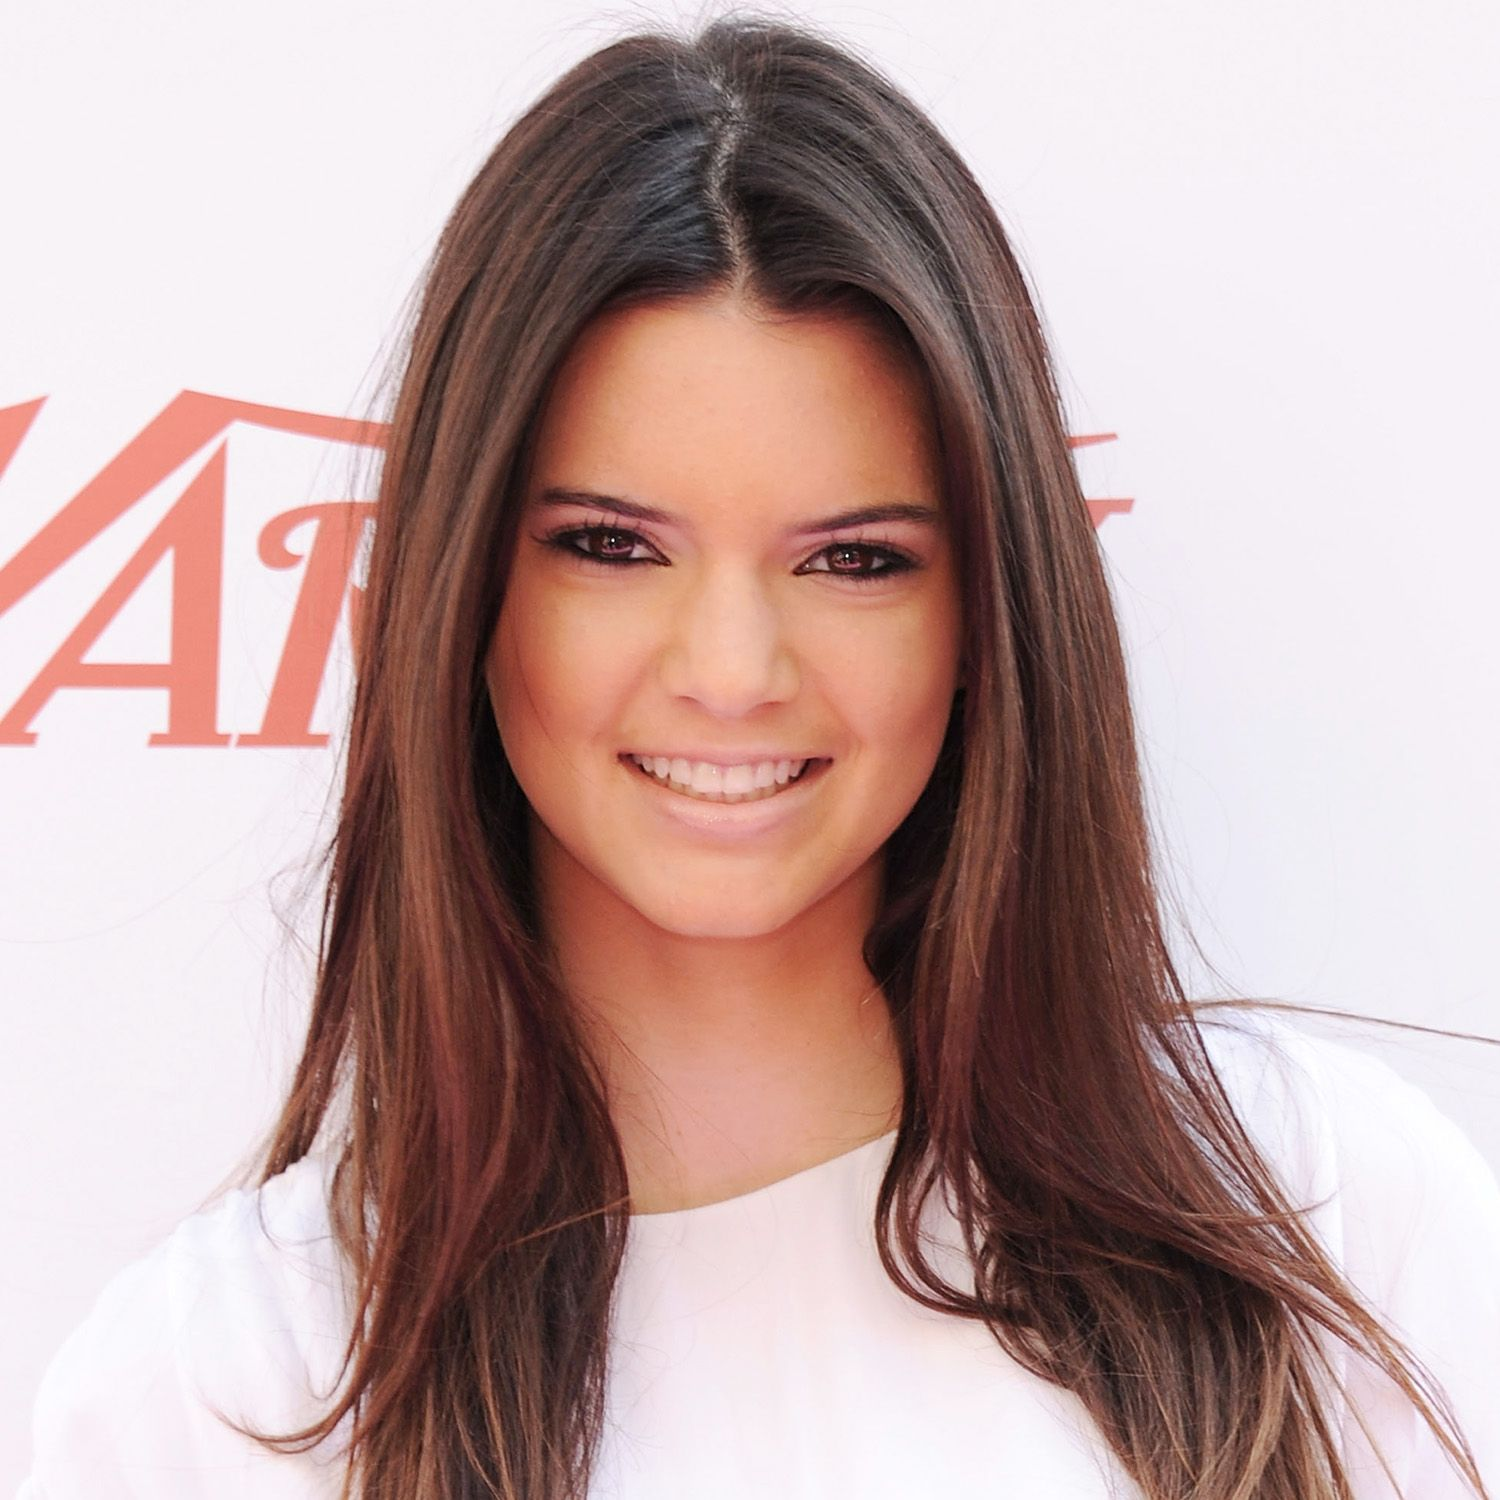 HOLLYWOOD - OCTOBER 24:  Model Kendall Jenner arrives at Variety's 4th Annual Power Of Youth Event at Paramount Studios on October 24, 2010 in Hollywood, California.  (Photo by Jon Kopaloff/FilmMagic) *** Local Caption *** Kendall Jenner